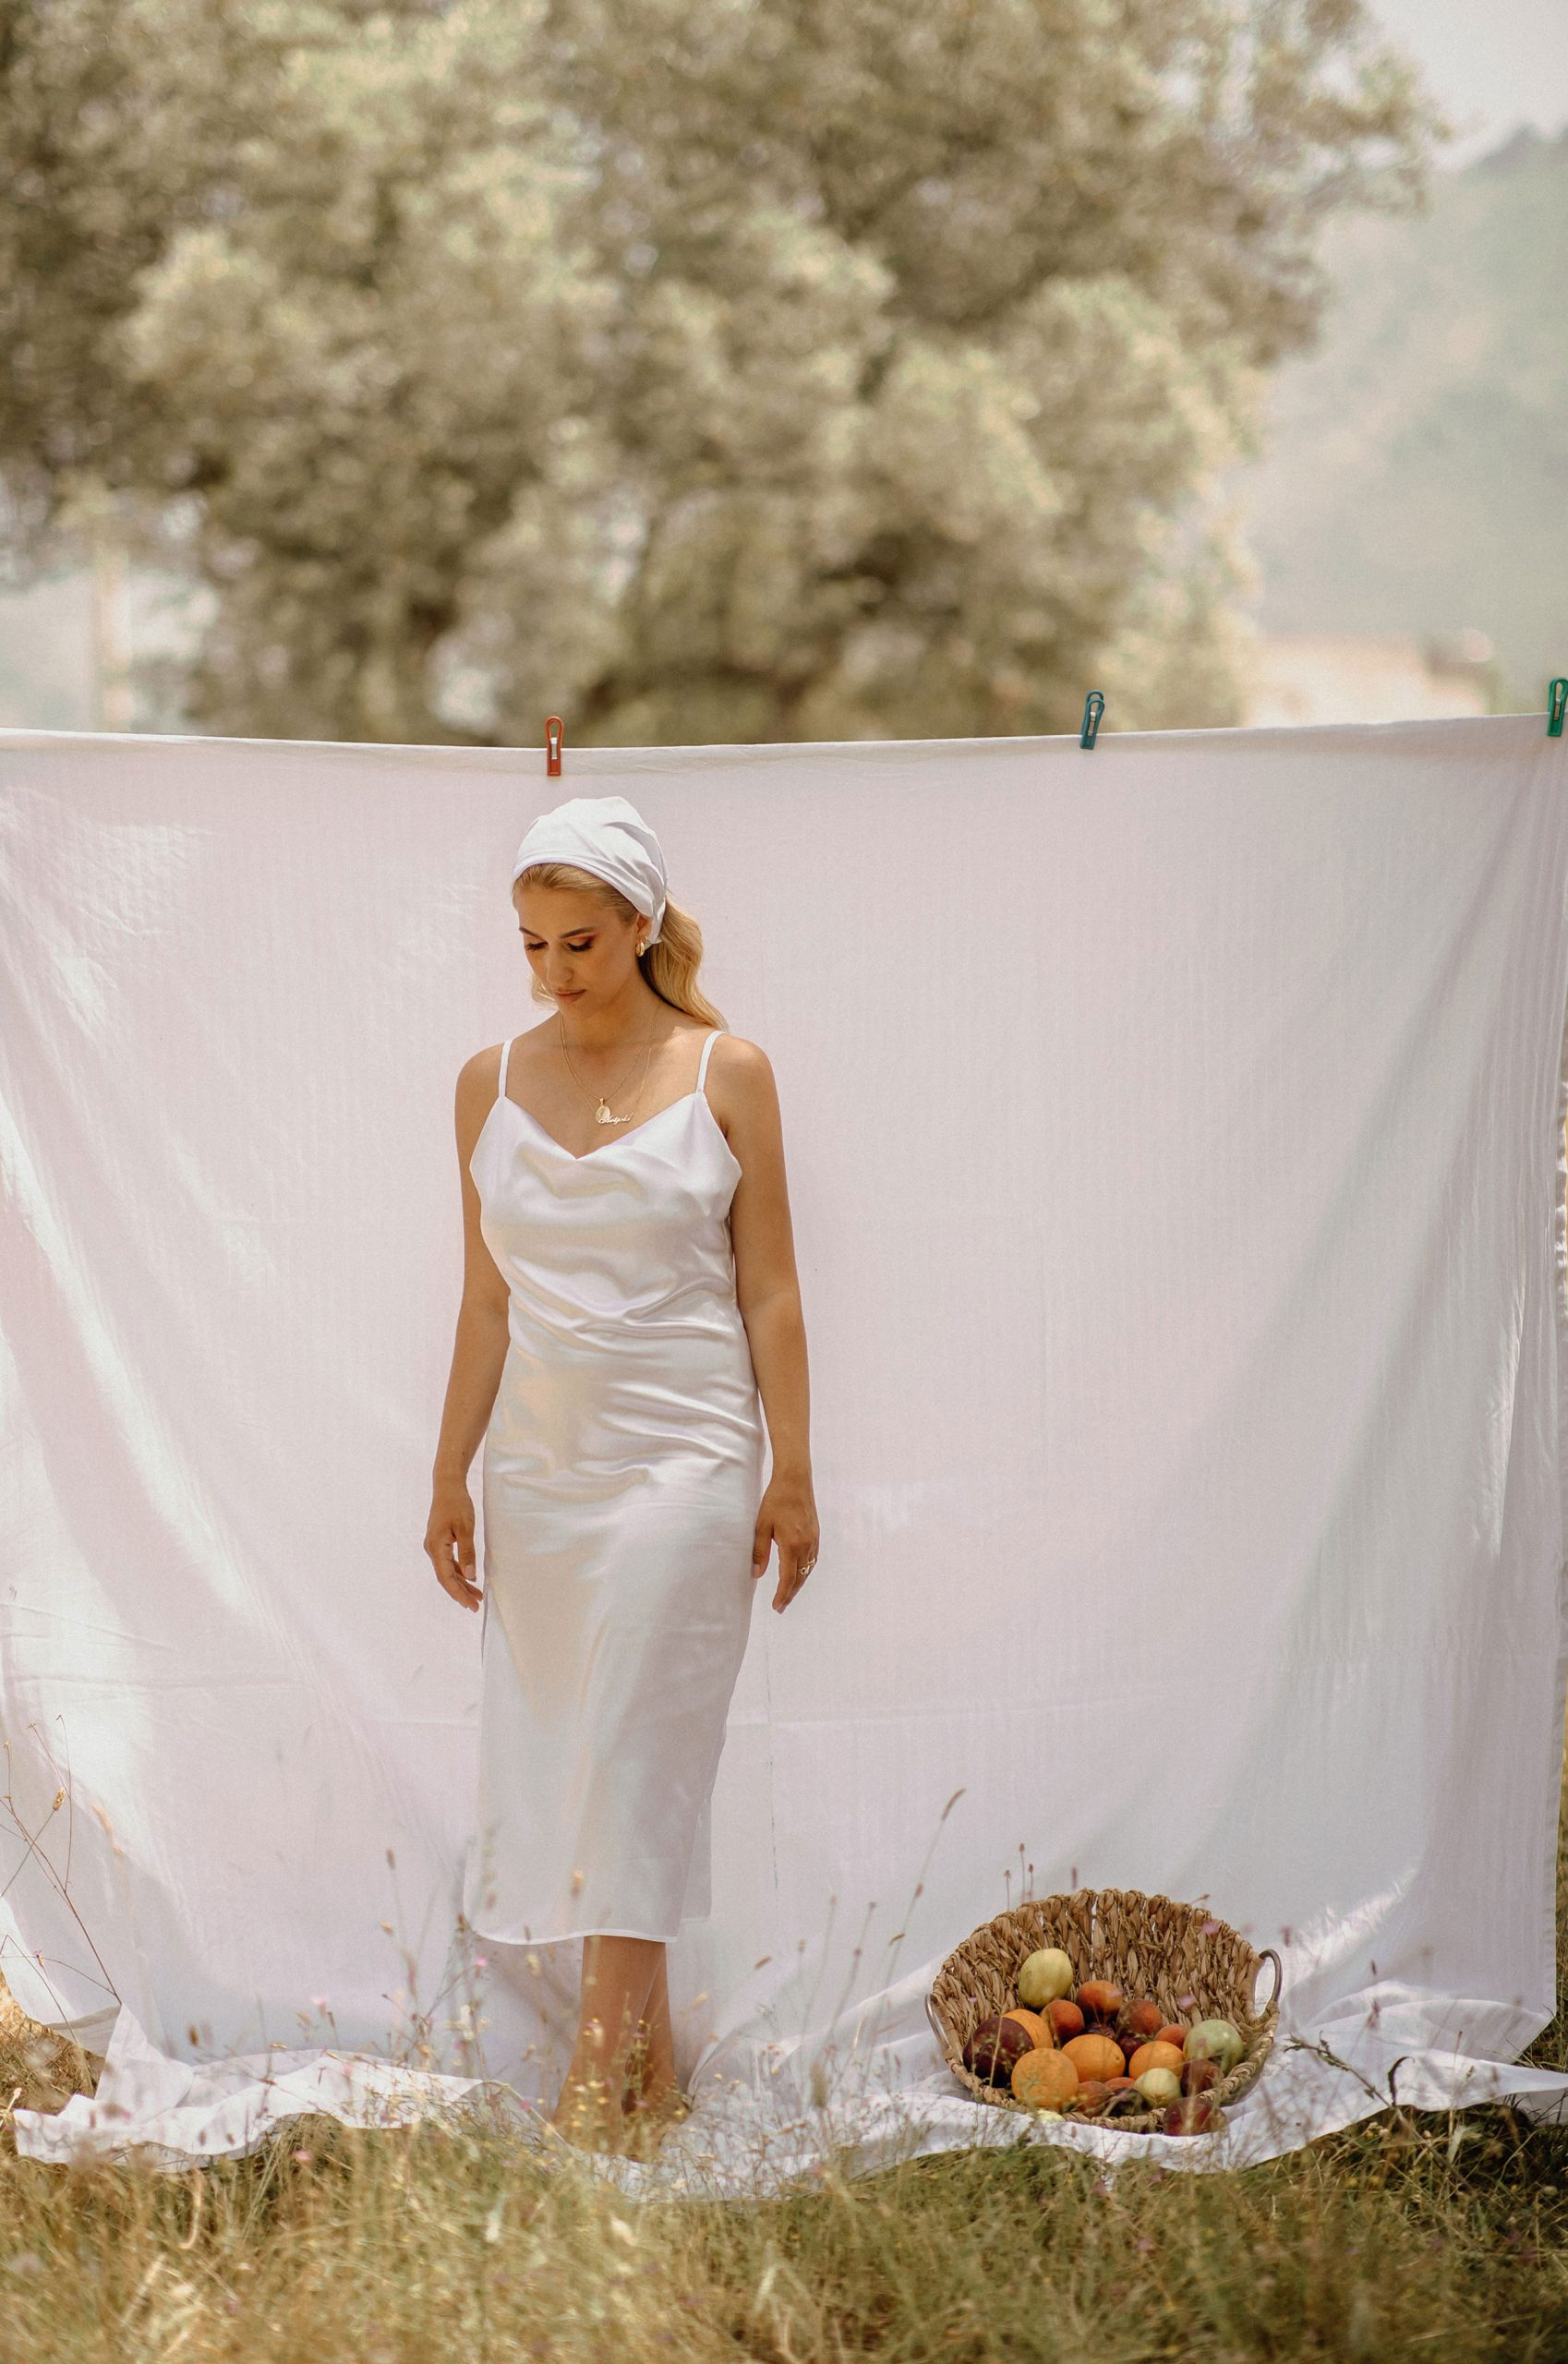 Girl staying near a white clothesline wearing white dress